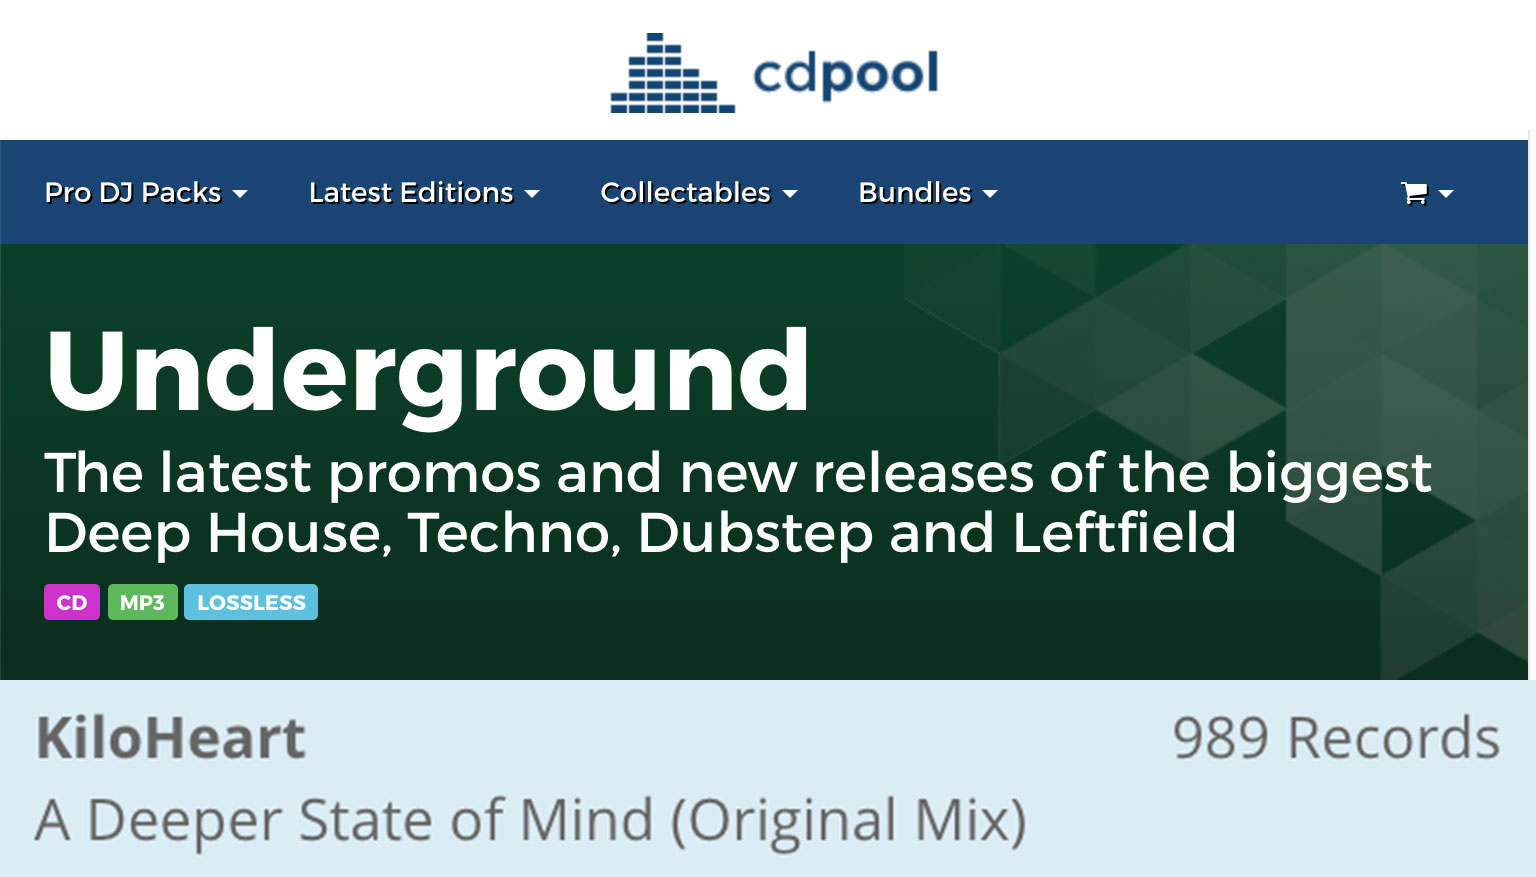 KiloHeart A Deeper State of Mind CD Pool Underground Disc July 2021 Edition